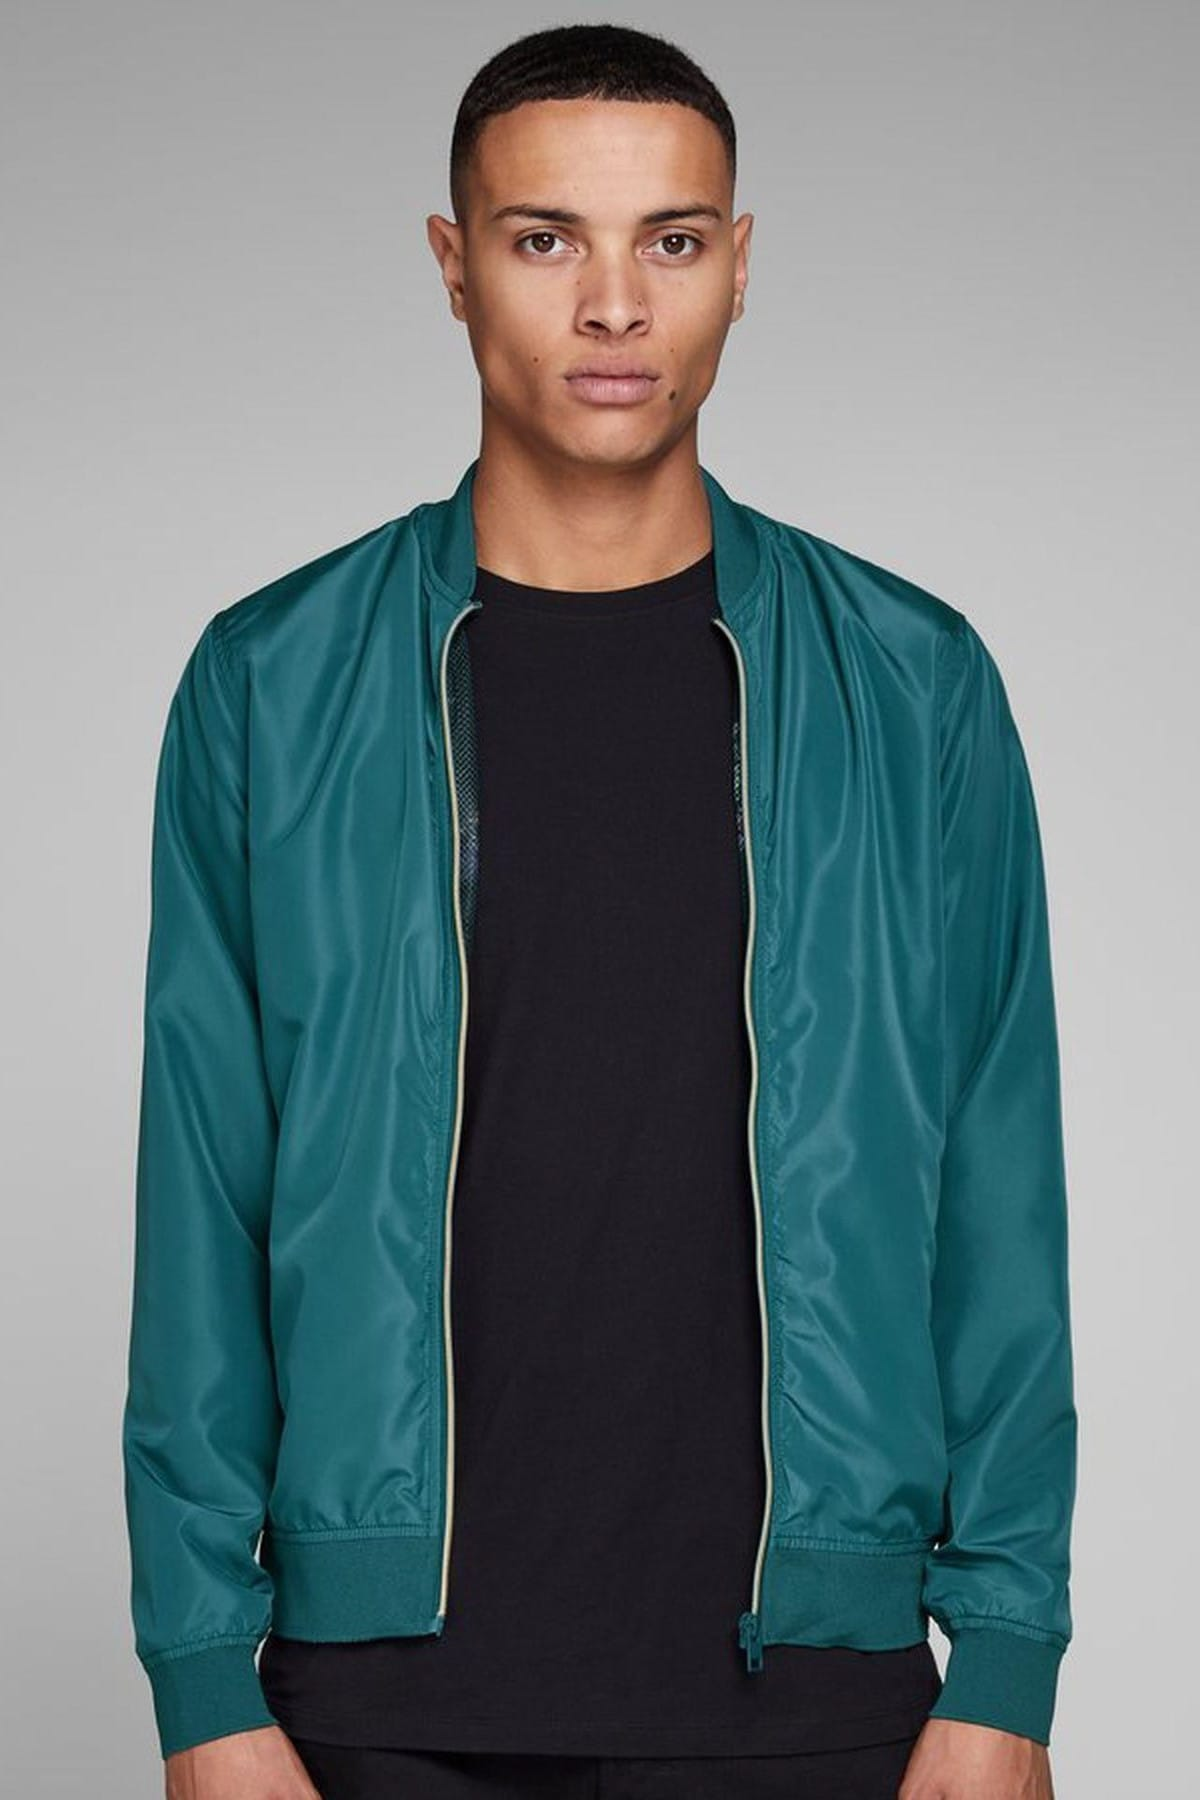 Erkek PETROLMAVI Jack & Jones Mont - Party Bomber Jacket 12145488